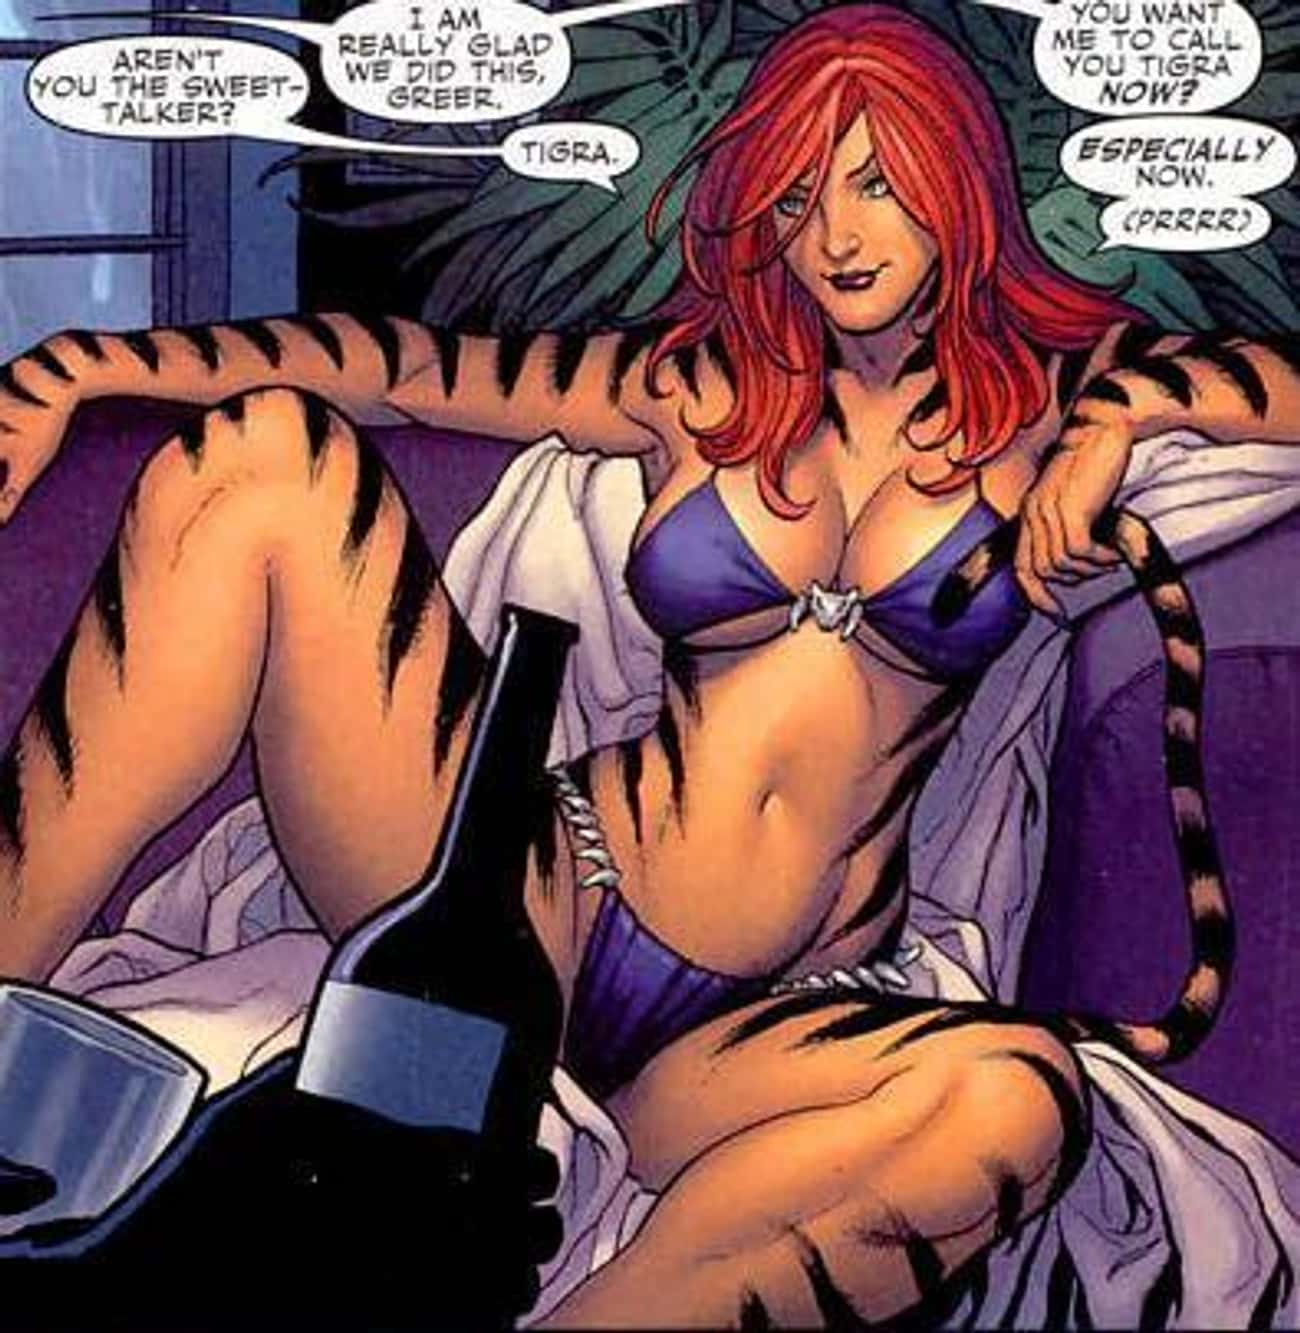 Tigra in Navy Blue Swimsuit is listed (or ranked) 1 on the list The Most Stunning Tigra Pictures